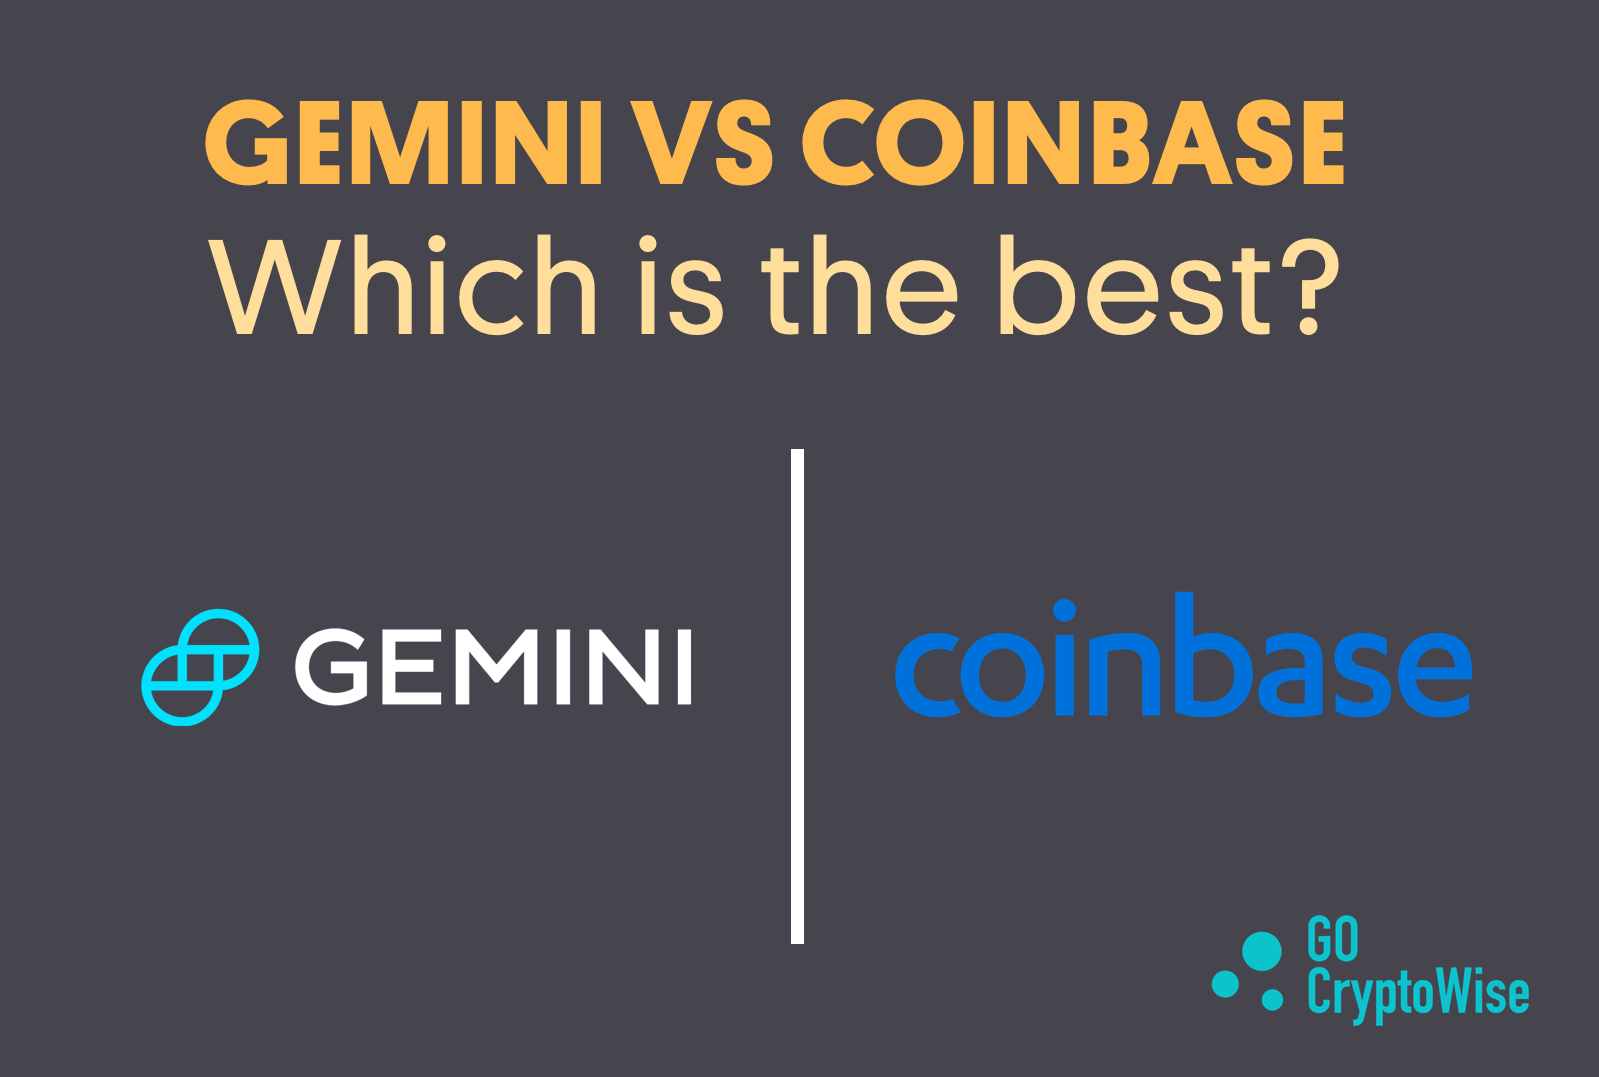 Gemini vs Coinbase which is the best?